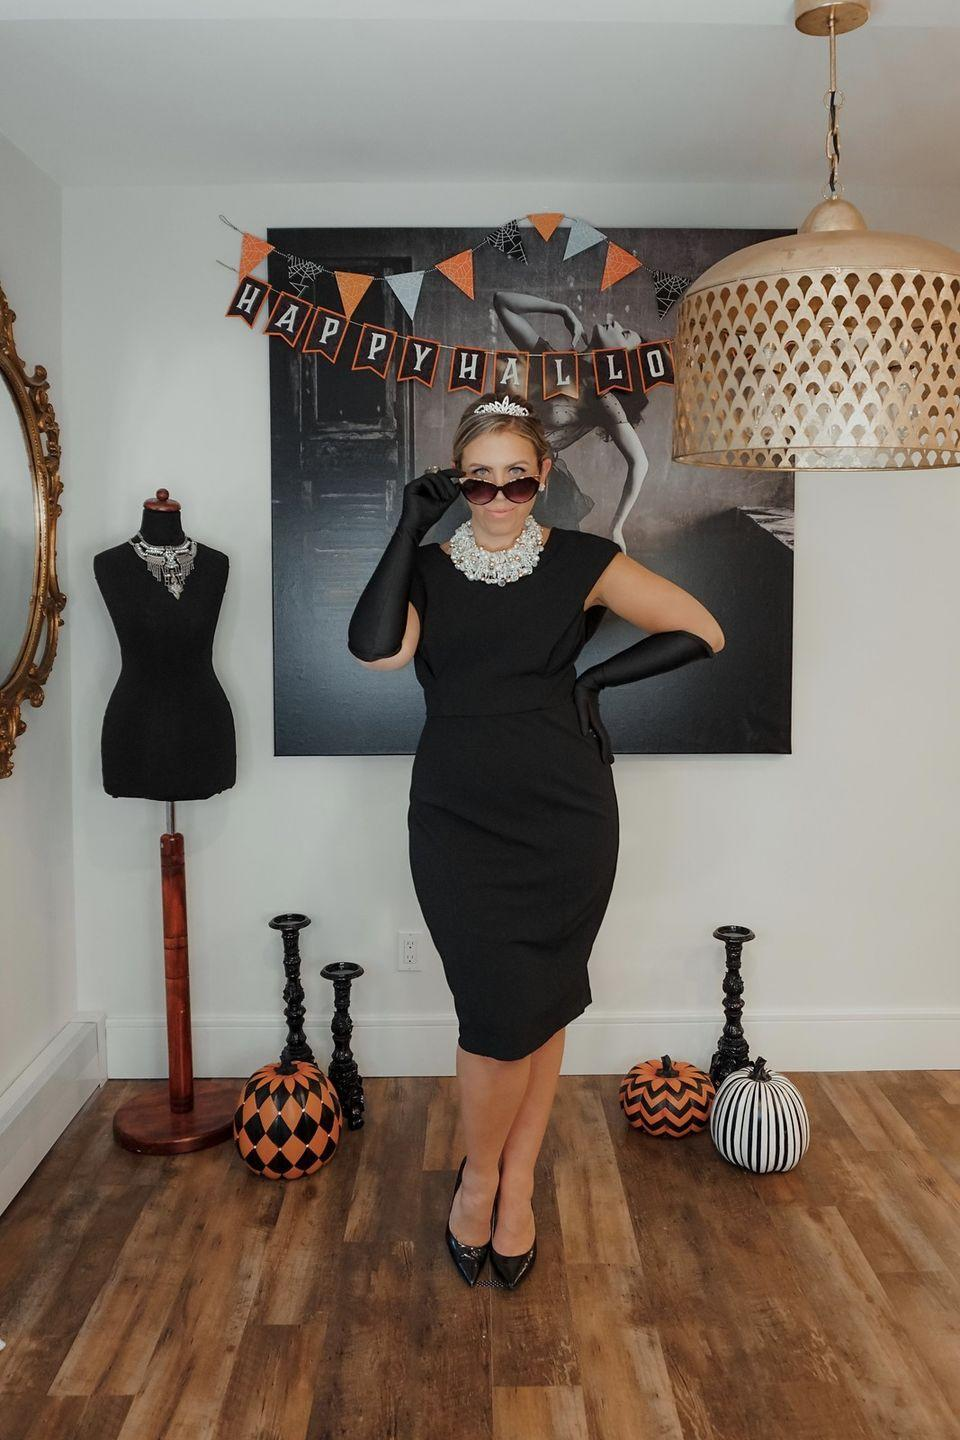 """<p>There's nothing more chic than dressing up as Holly Golightly from <em><a href=""""https://www.amazon.com/Breakfast-at-Tiffanys-Audrey-Hepburn/dp/B000HX499S?tag=syn-yahoo-20&ascsubtag=%5Bartid%7C10055.g.34292032%5Bsrc%7Cyahoo-us"""" rel=""""nofollow noopener"""" target=""""_blank"""" data-ylk=""""slk:Breakfast at Tiffany's"""" class=""""link rapid-noclick-resp"""">Breakfast at Tiffany's</a></em><em> — </em>or recreating her iconic <a href=""""https://www.goodhousekeeping.com/beauty/hair/tips/g1800/celebrity-hairstyles-updo/"""" rel=""""nofollow noopener"""" target=""""_blank"""" data-ylk=""""slk:updo hairstyle"""" class=""""link rapid-noclick-resp"""">updo hairstyle</a> from the movie. Not to mention, we love any excuse to wear a tiara and a classic LBD!<br></p><p><em><a href=""""http://livingaftermidnite.com/2020/10/iconic-movie-halloween-costumes-you-can-diy.html"""" rel=""""nofollow noopener"""" target=""""_blank"""" data-ylk=""""slk:Get the tutorial at Living After Midnite »"""" class=""""link rapid-noclick-resp"""">Get the tutorial at Living After Midnite »</a></em></p>"""